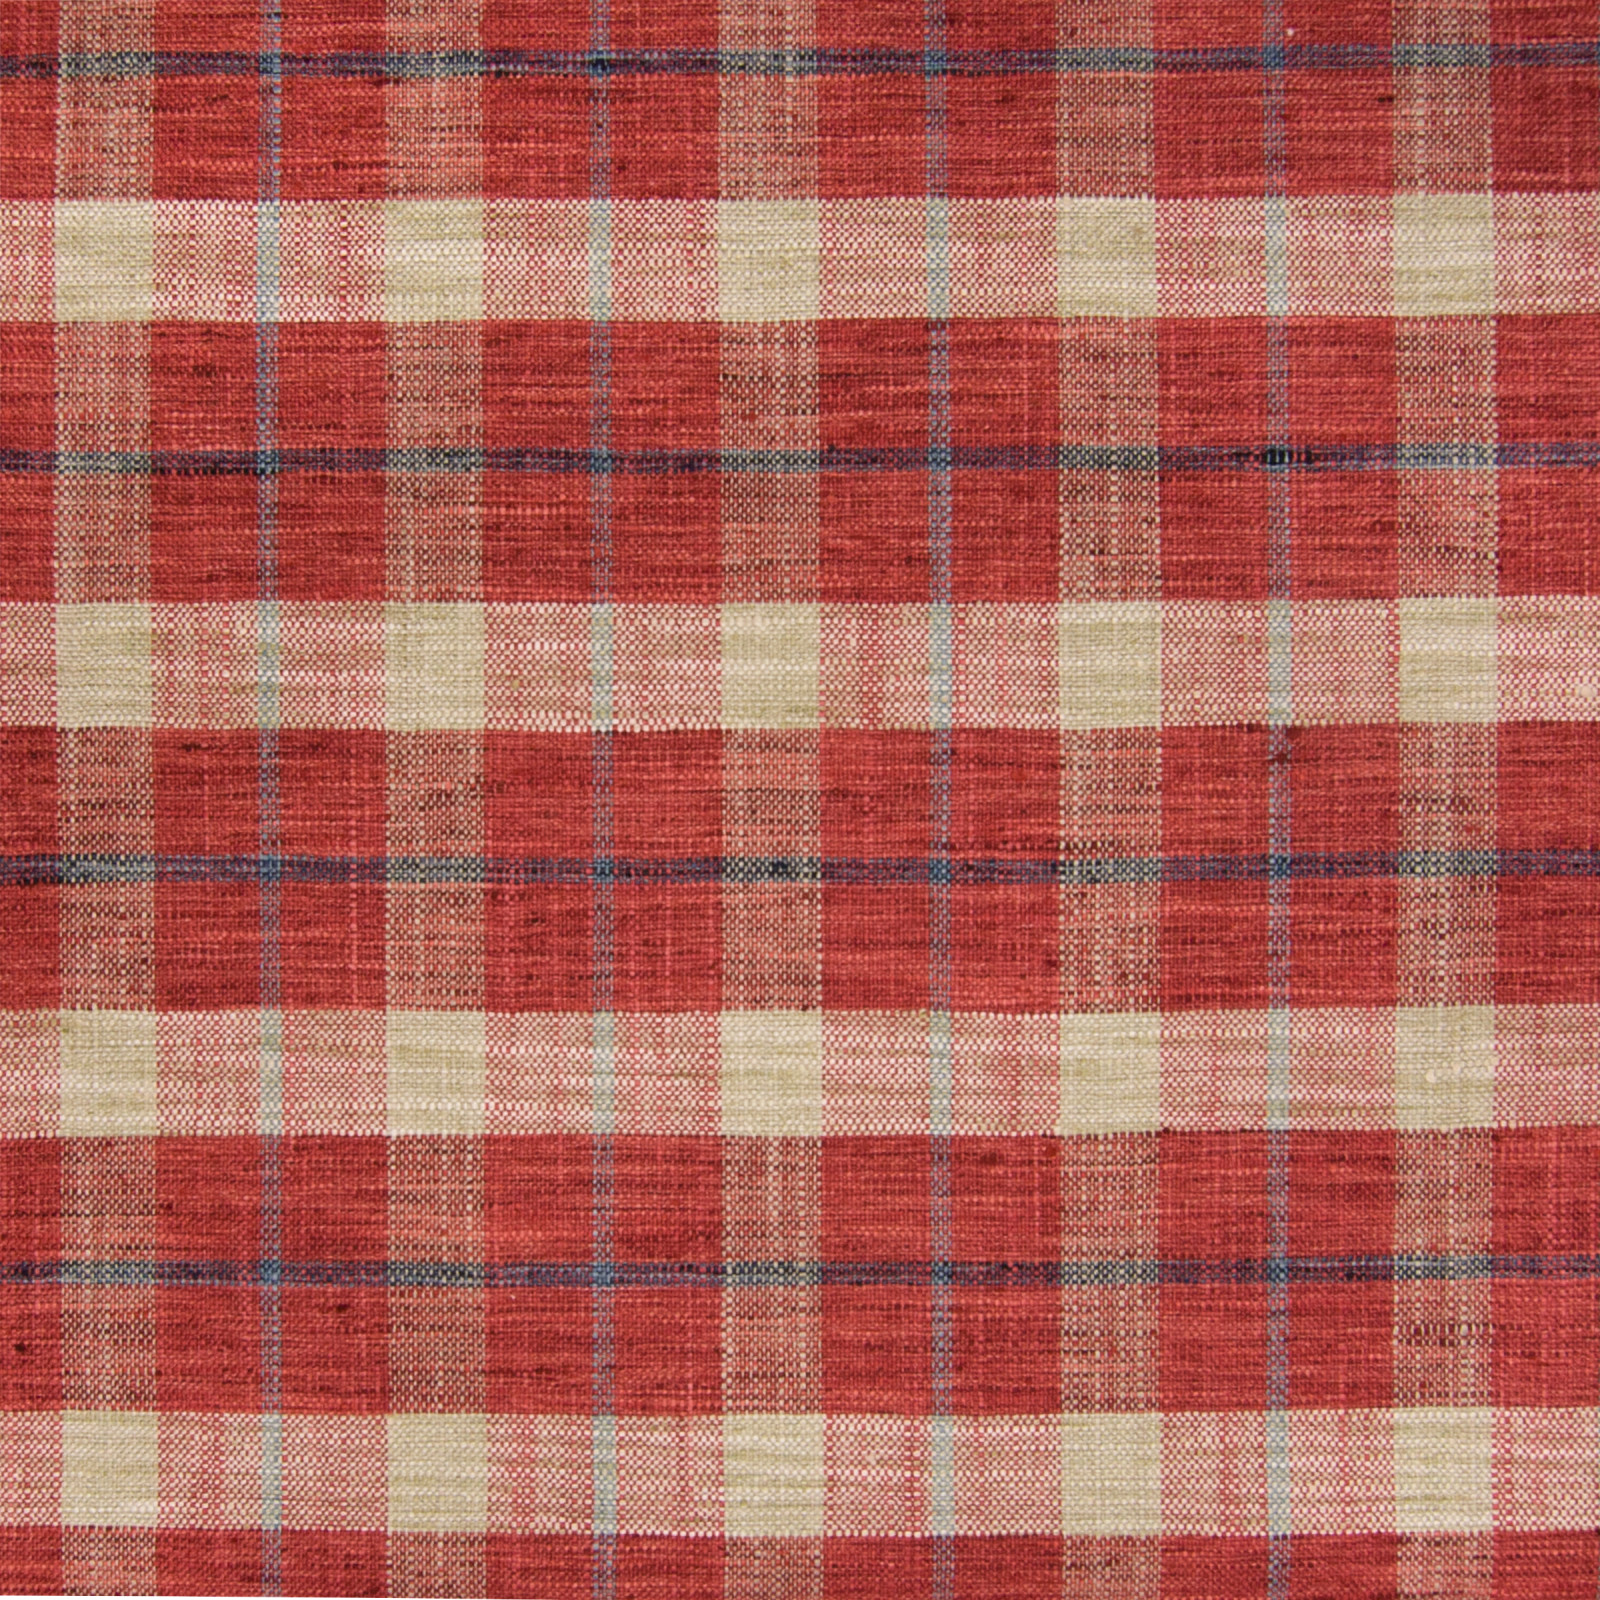 Pompeii Red Plaid Woven Upholstery Fabric